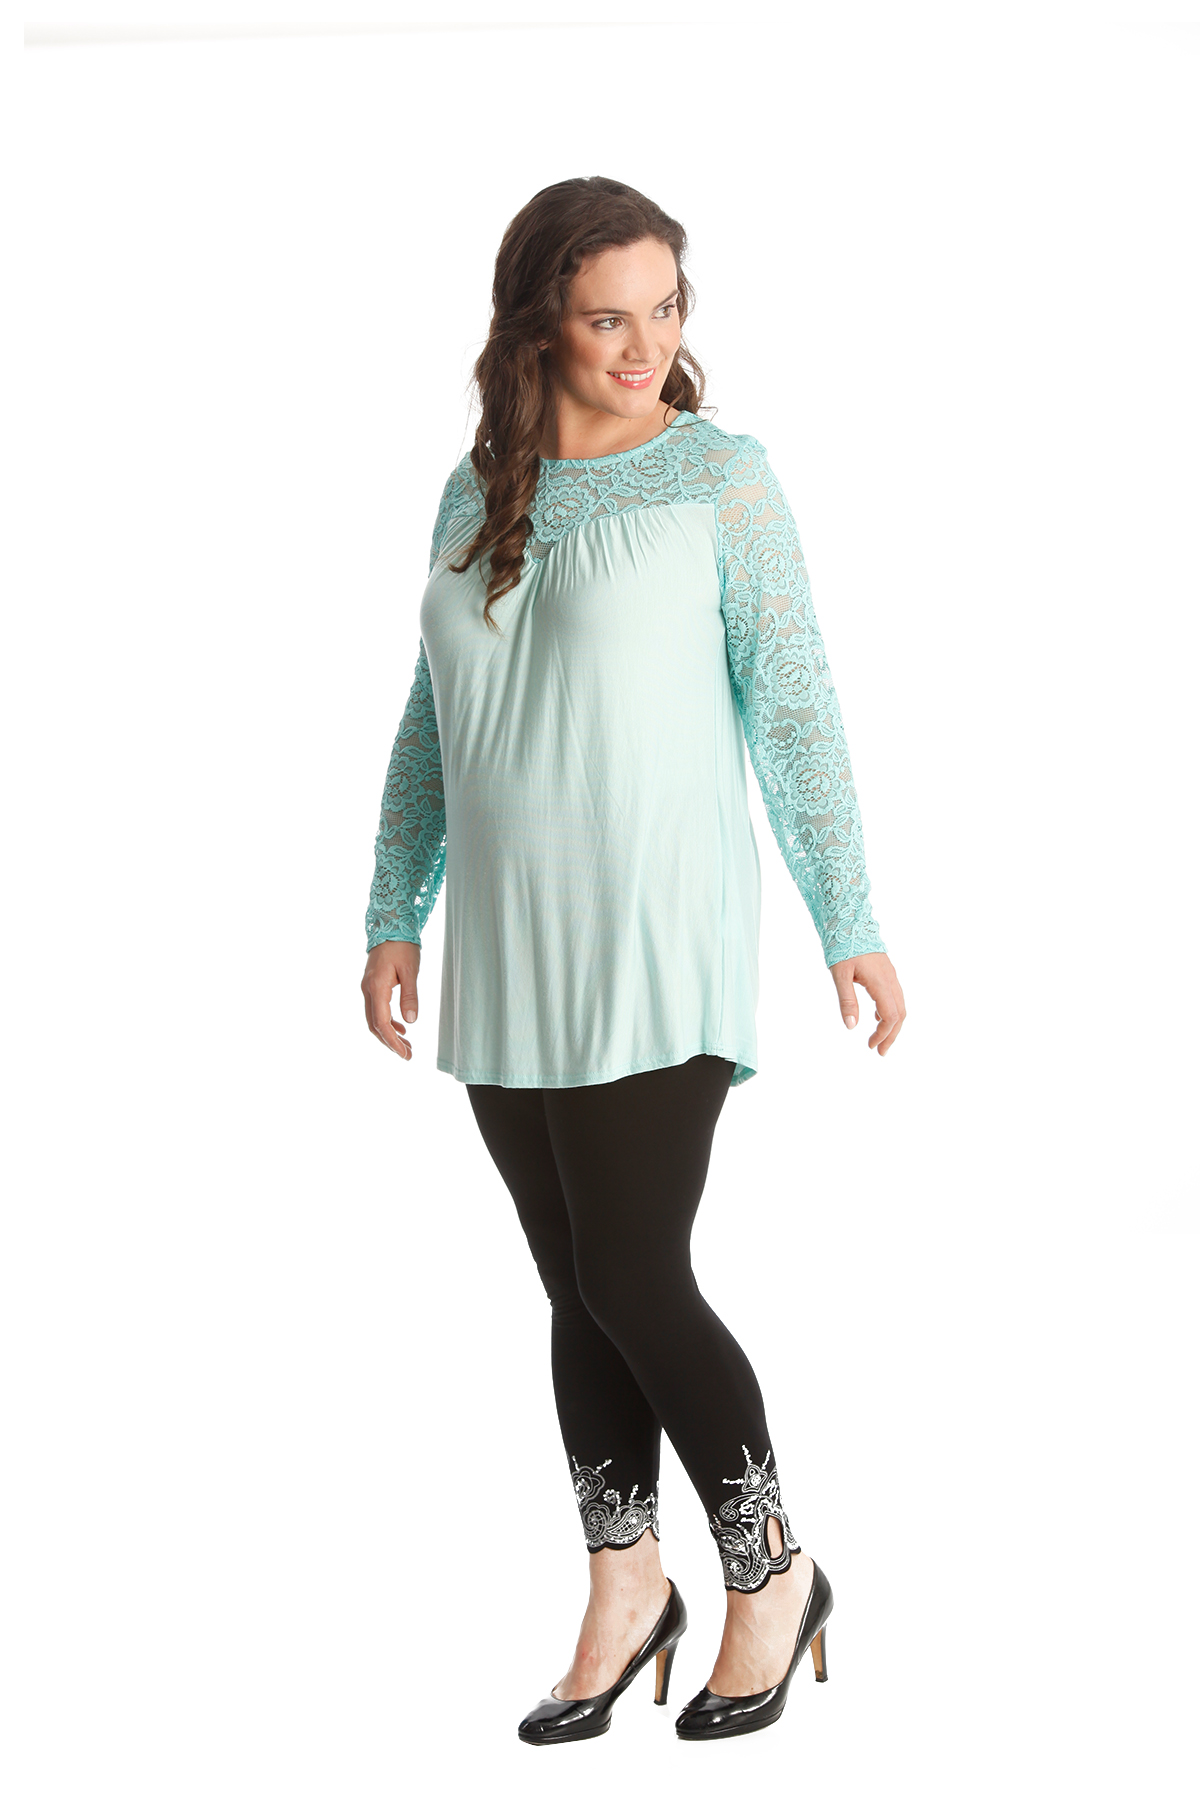 Tunics Stand out and be confident Accentuate your figure and stand out in confident style this season with our scintillating collection of plus size tunic tops for women.